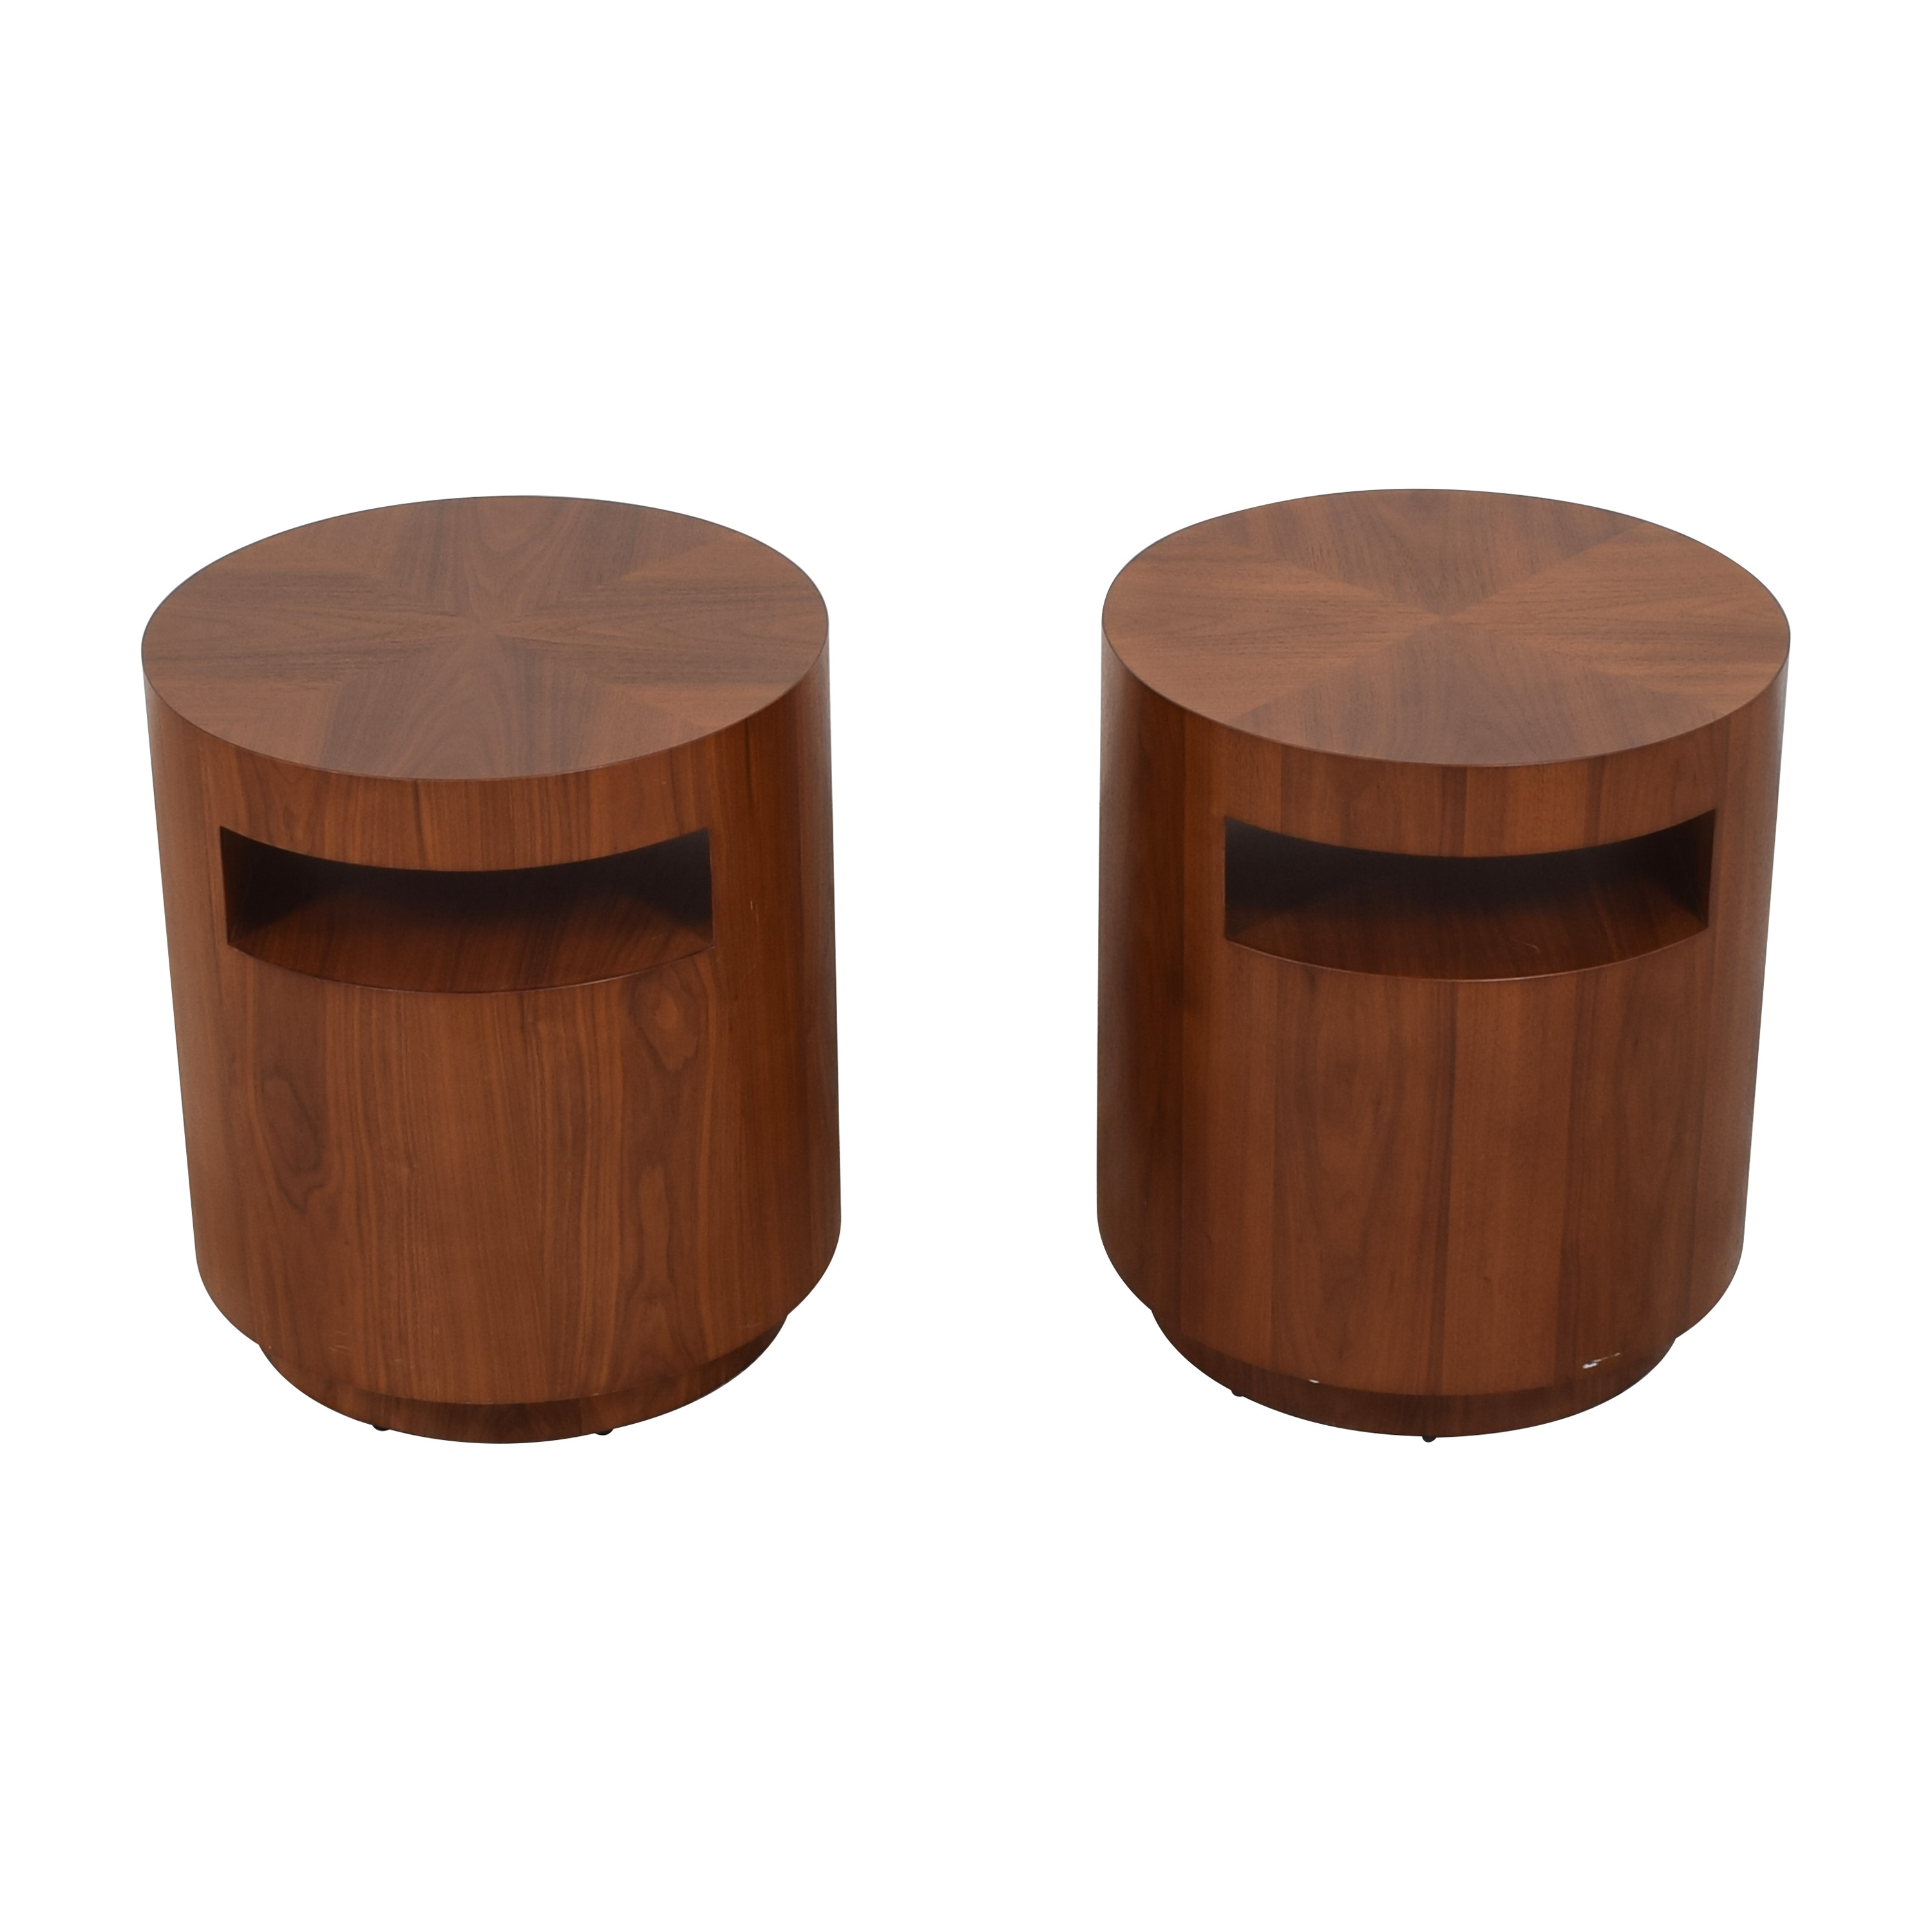 Crate & Barrel Crate & Barrel Tambe End Tables second hand